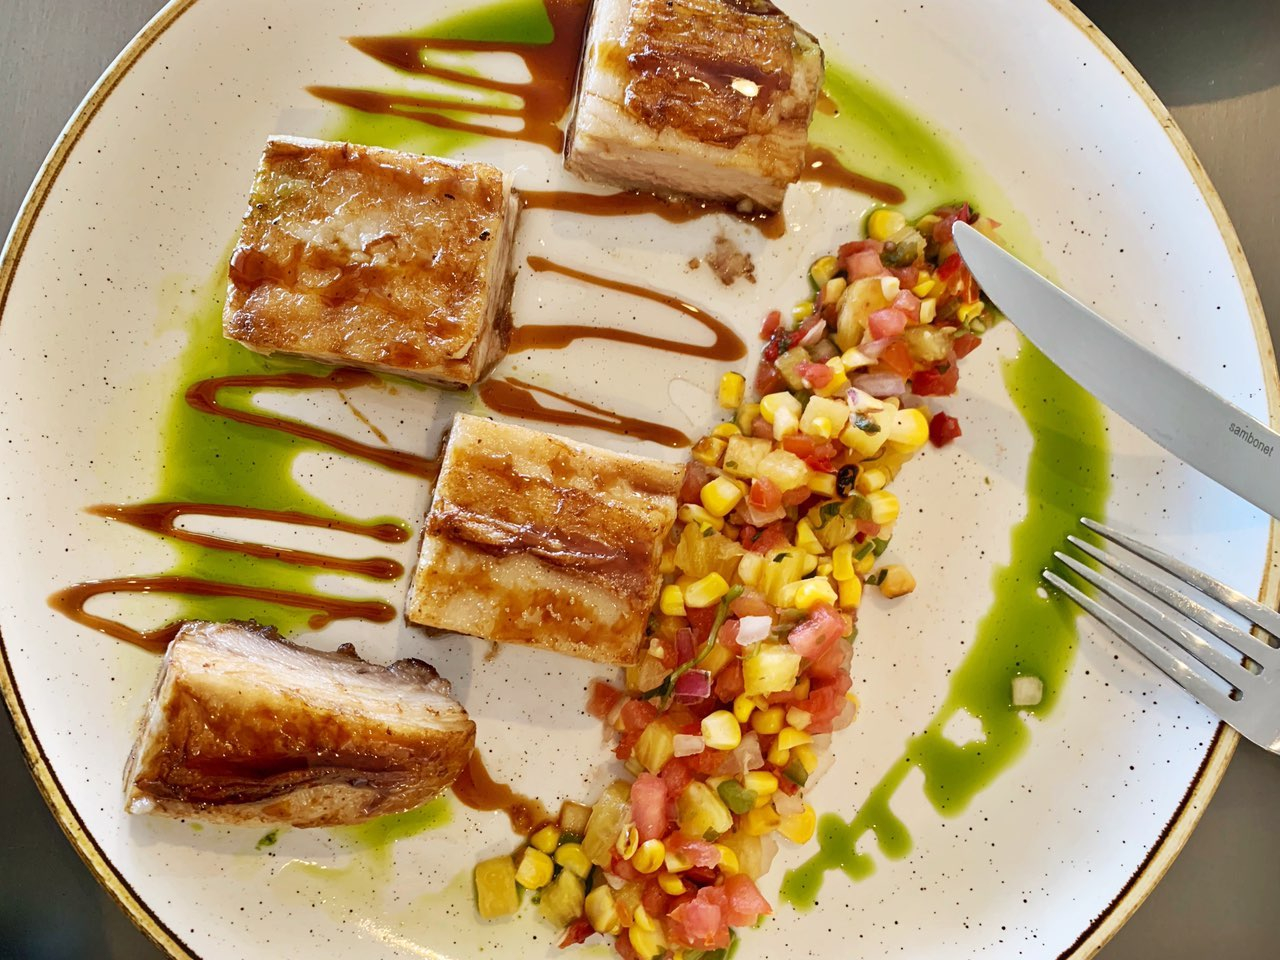 This image does not reflect actual entrée. Actual entrée may vary due to weekly changes in menu.